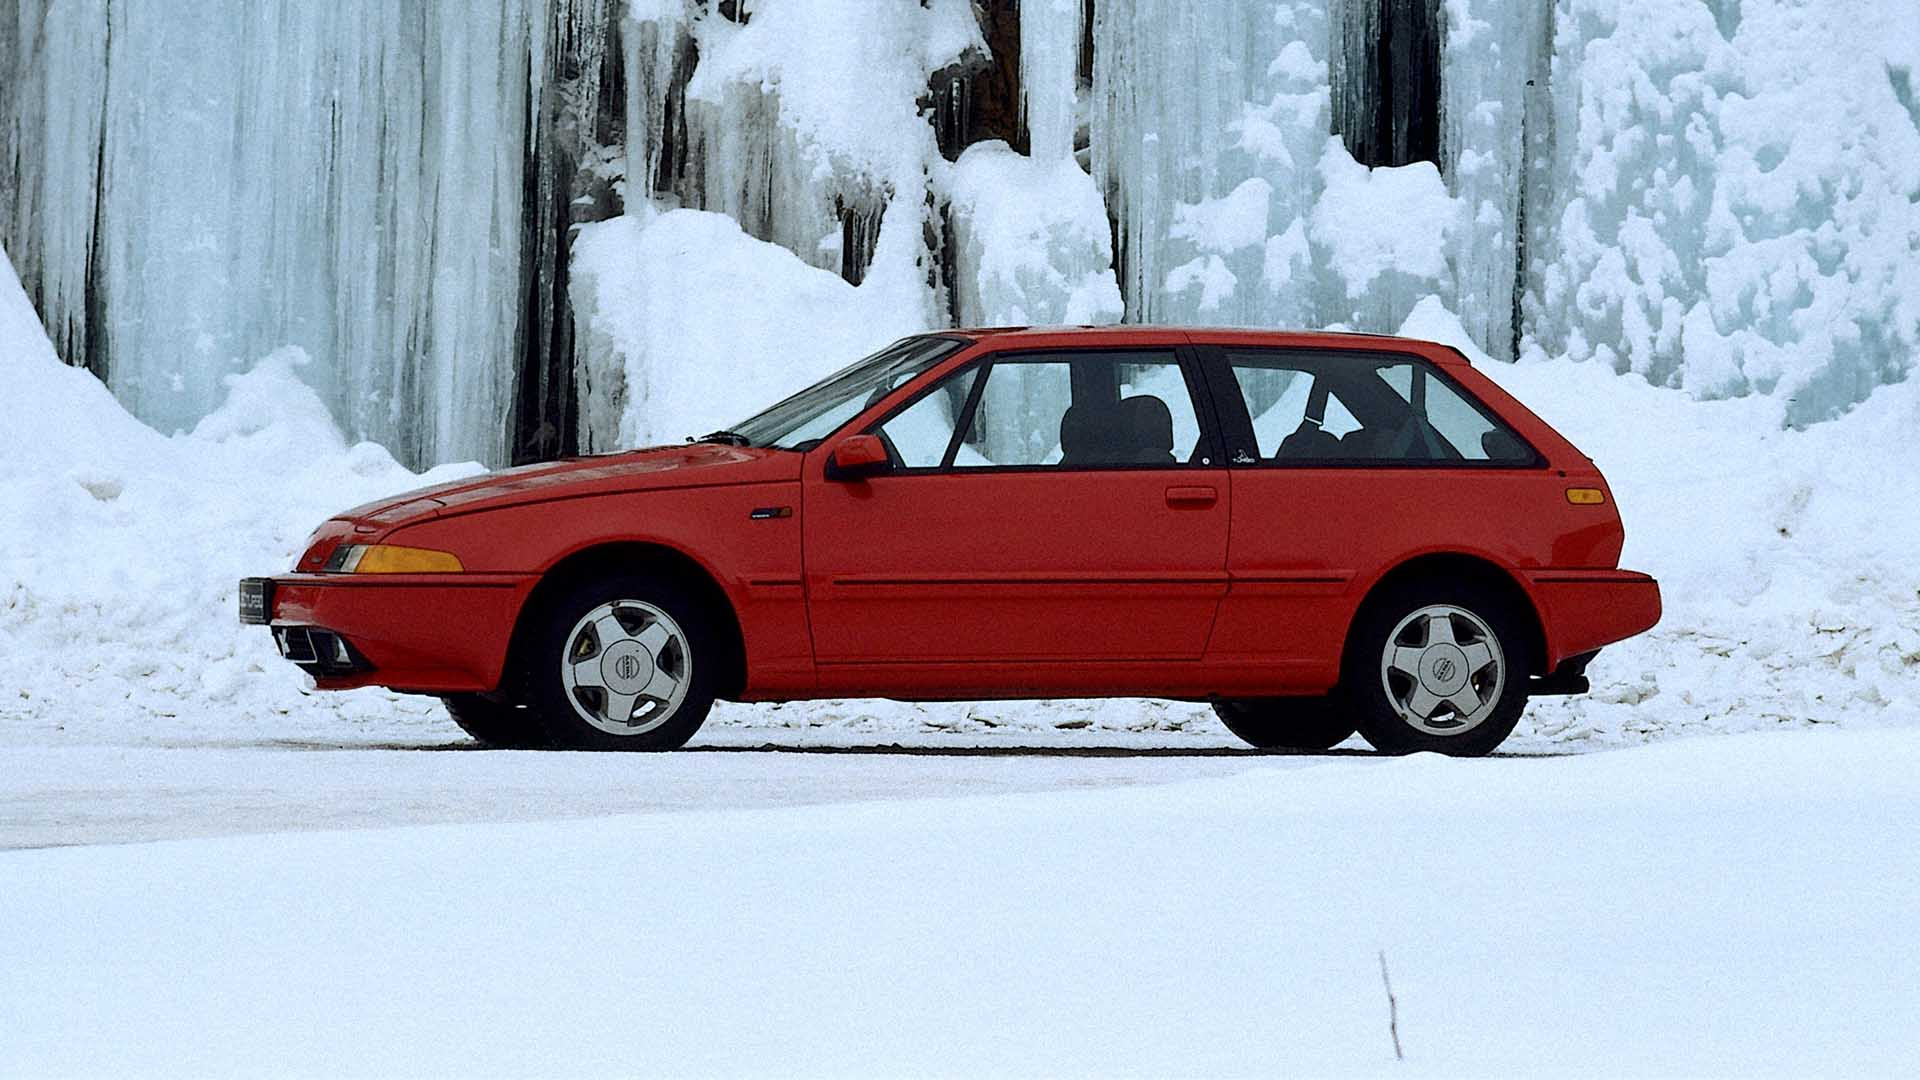 Volvo 480 Turbo snow